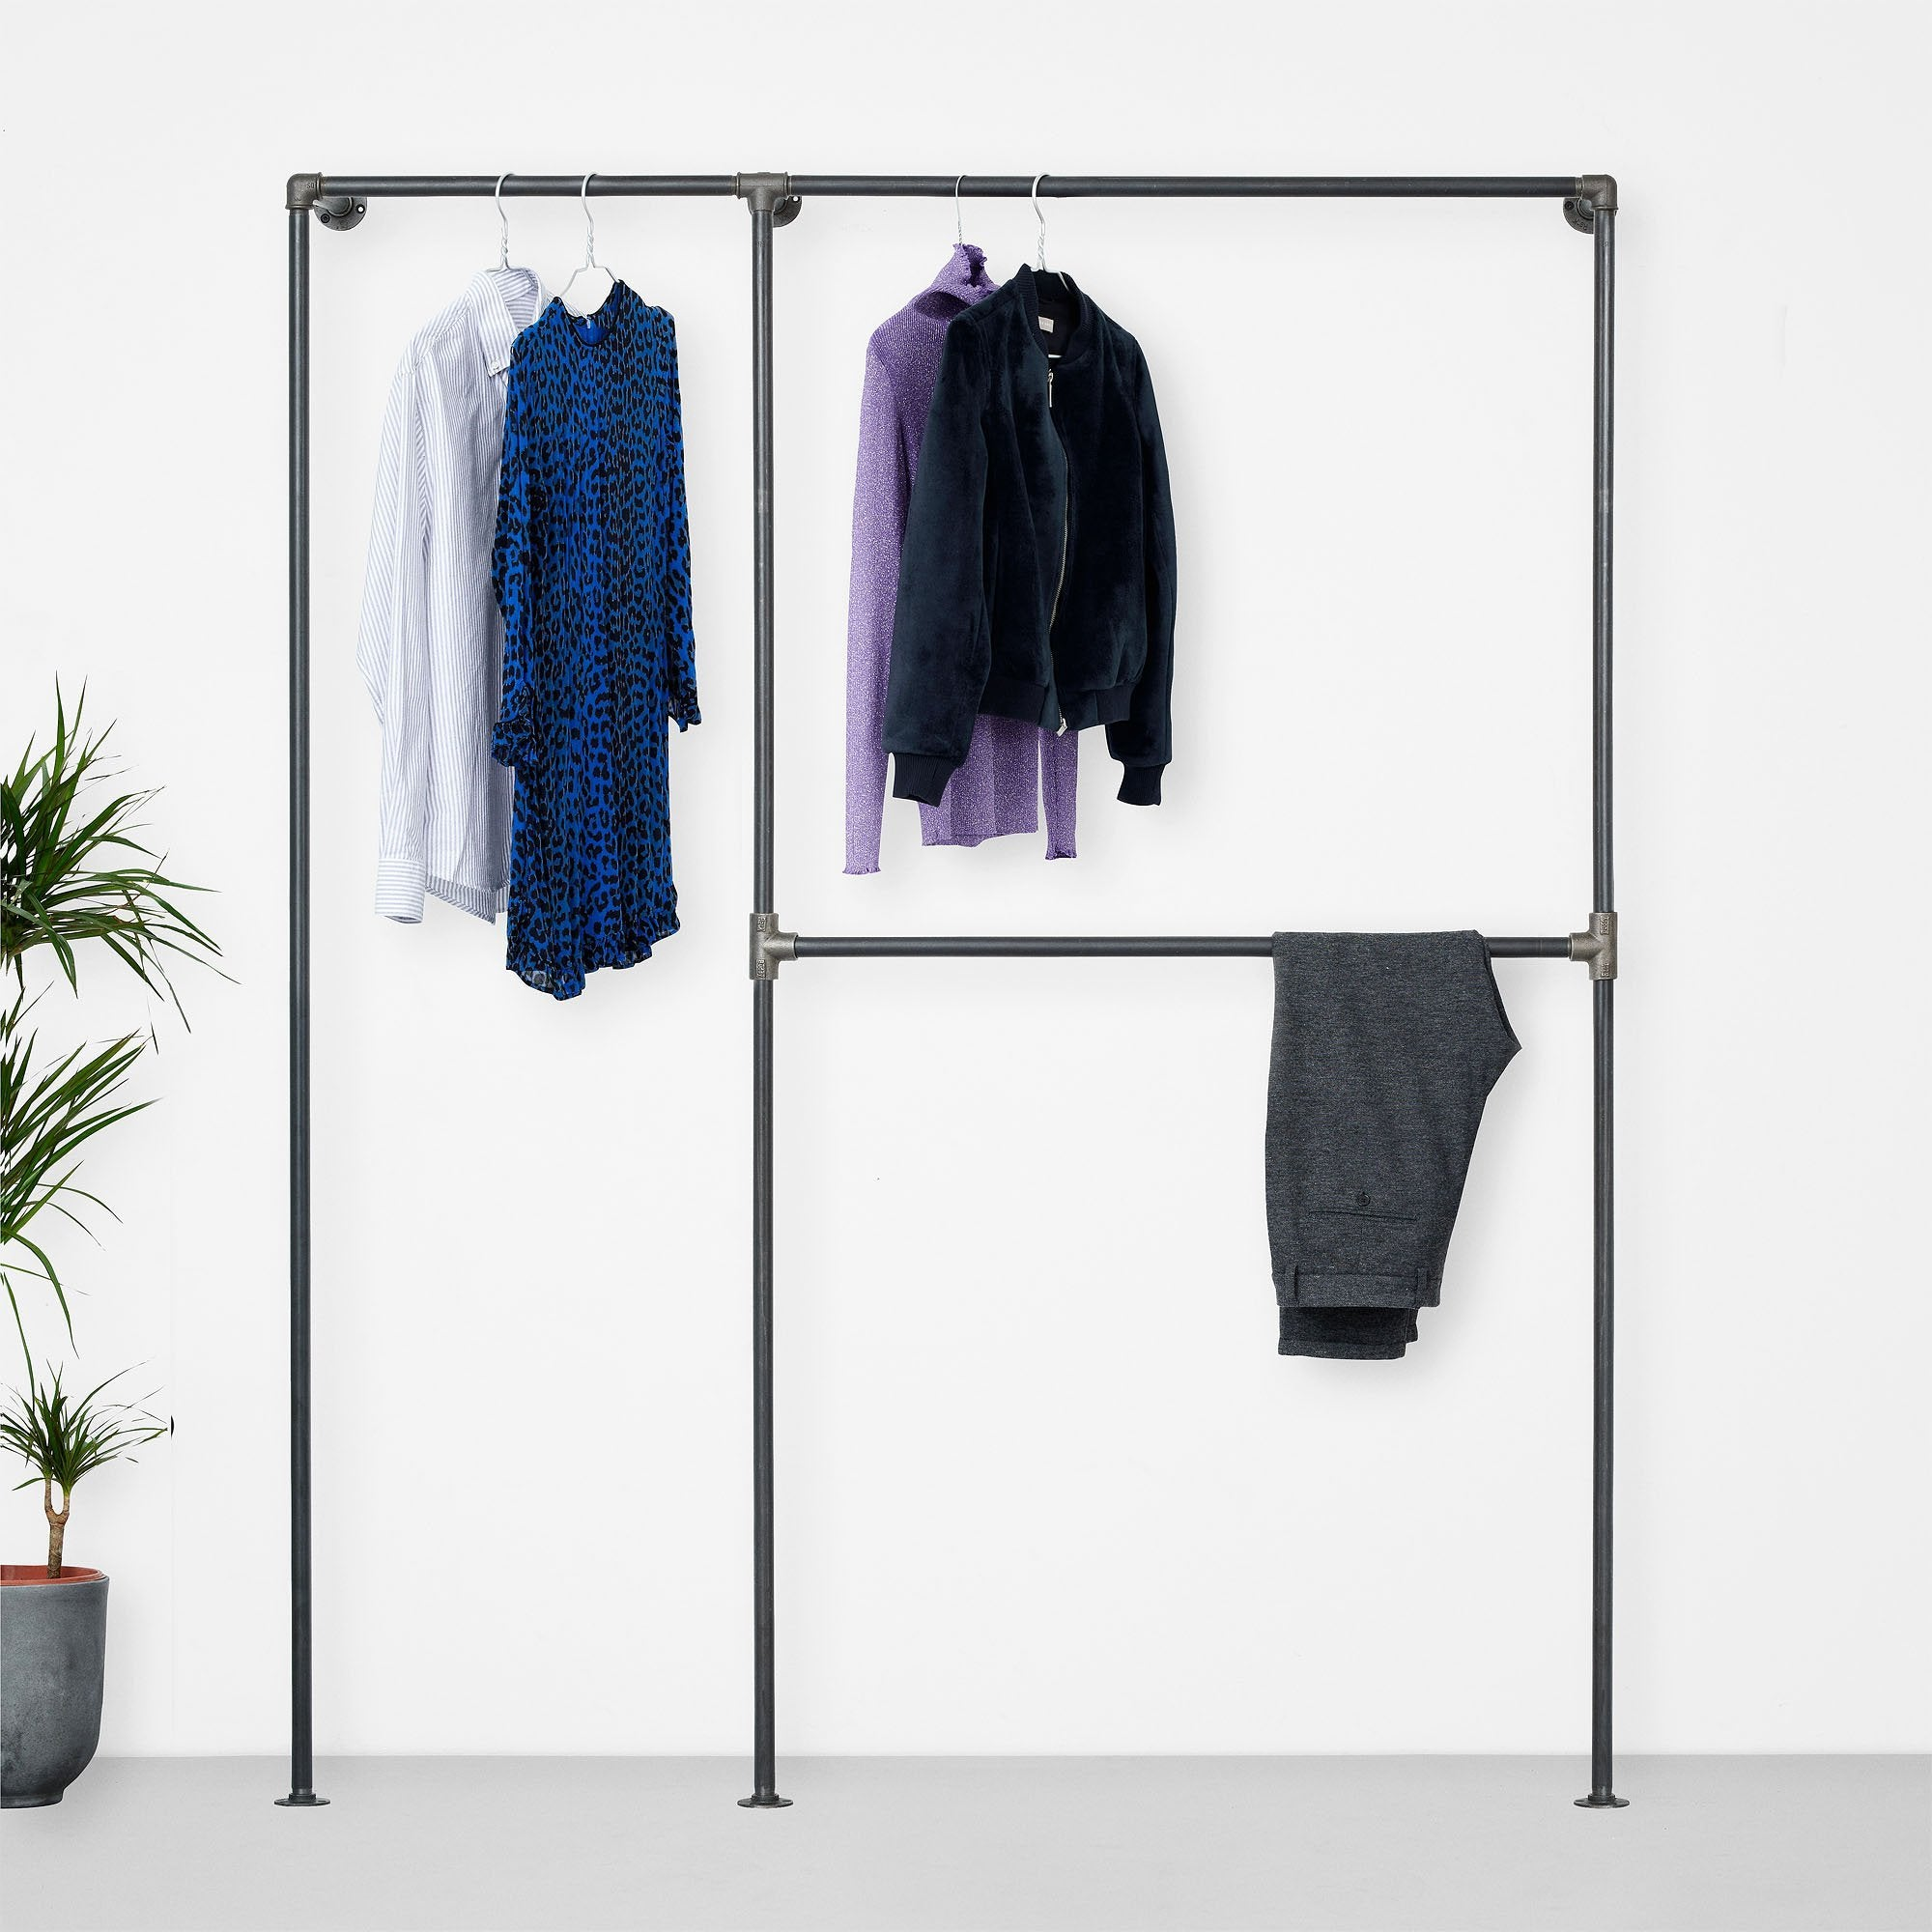 Walk-in wardrobe with room for both shirts, pants and a large space for dresses and jackets. A perfect solution to display your entire wardrobe.